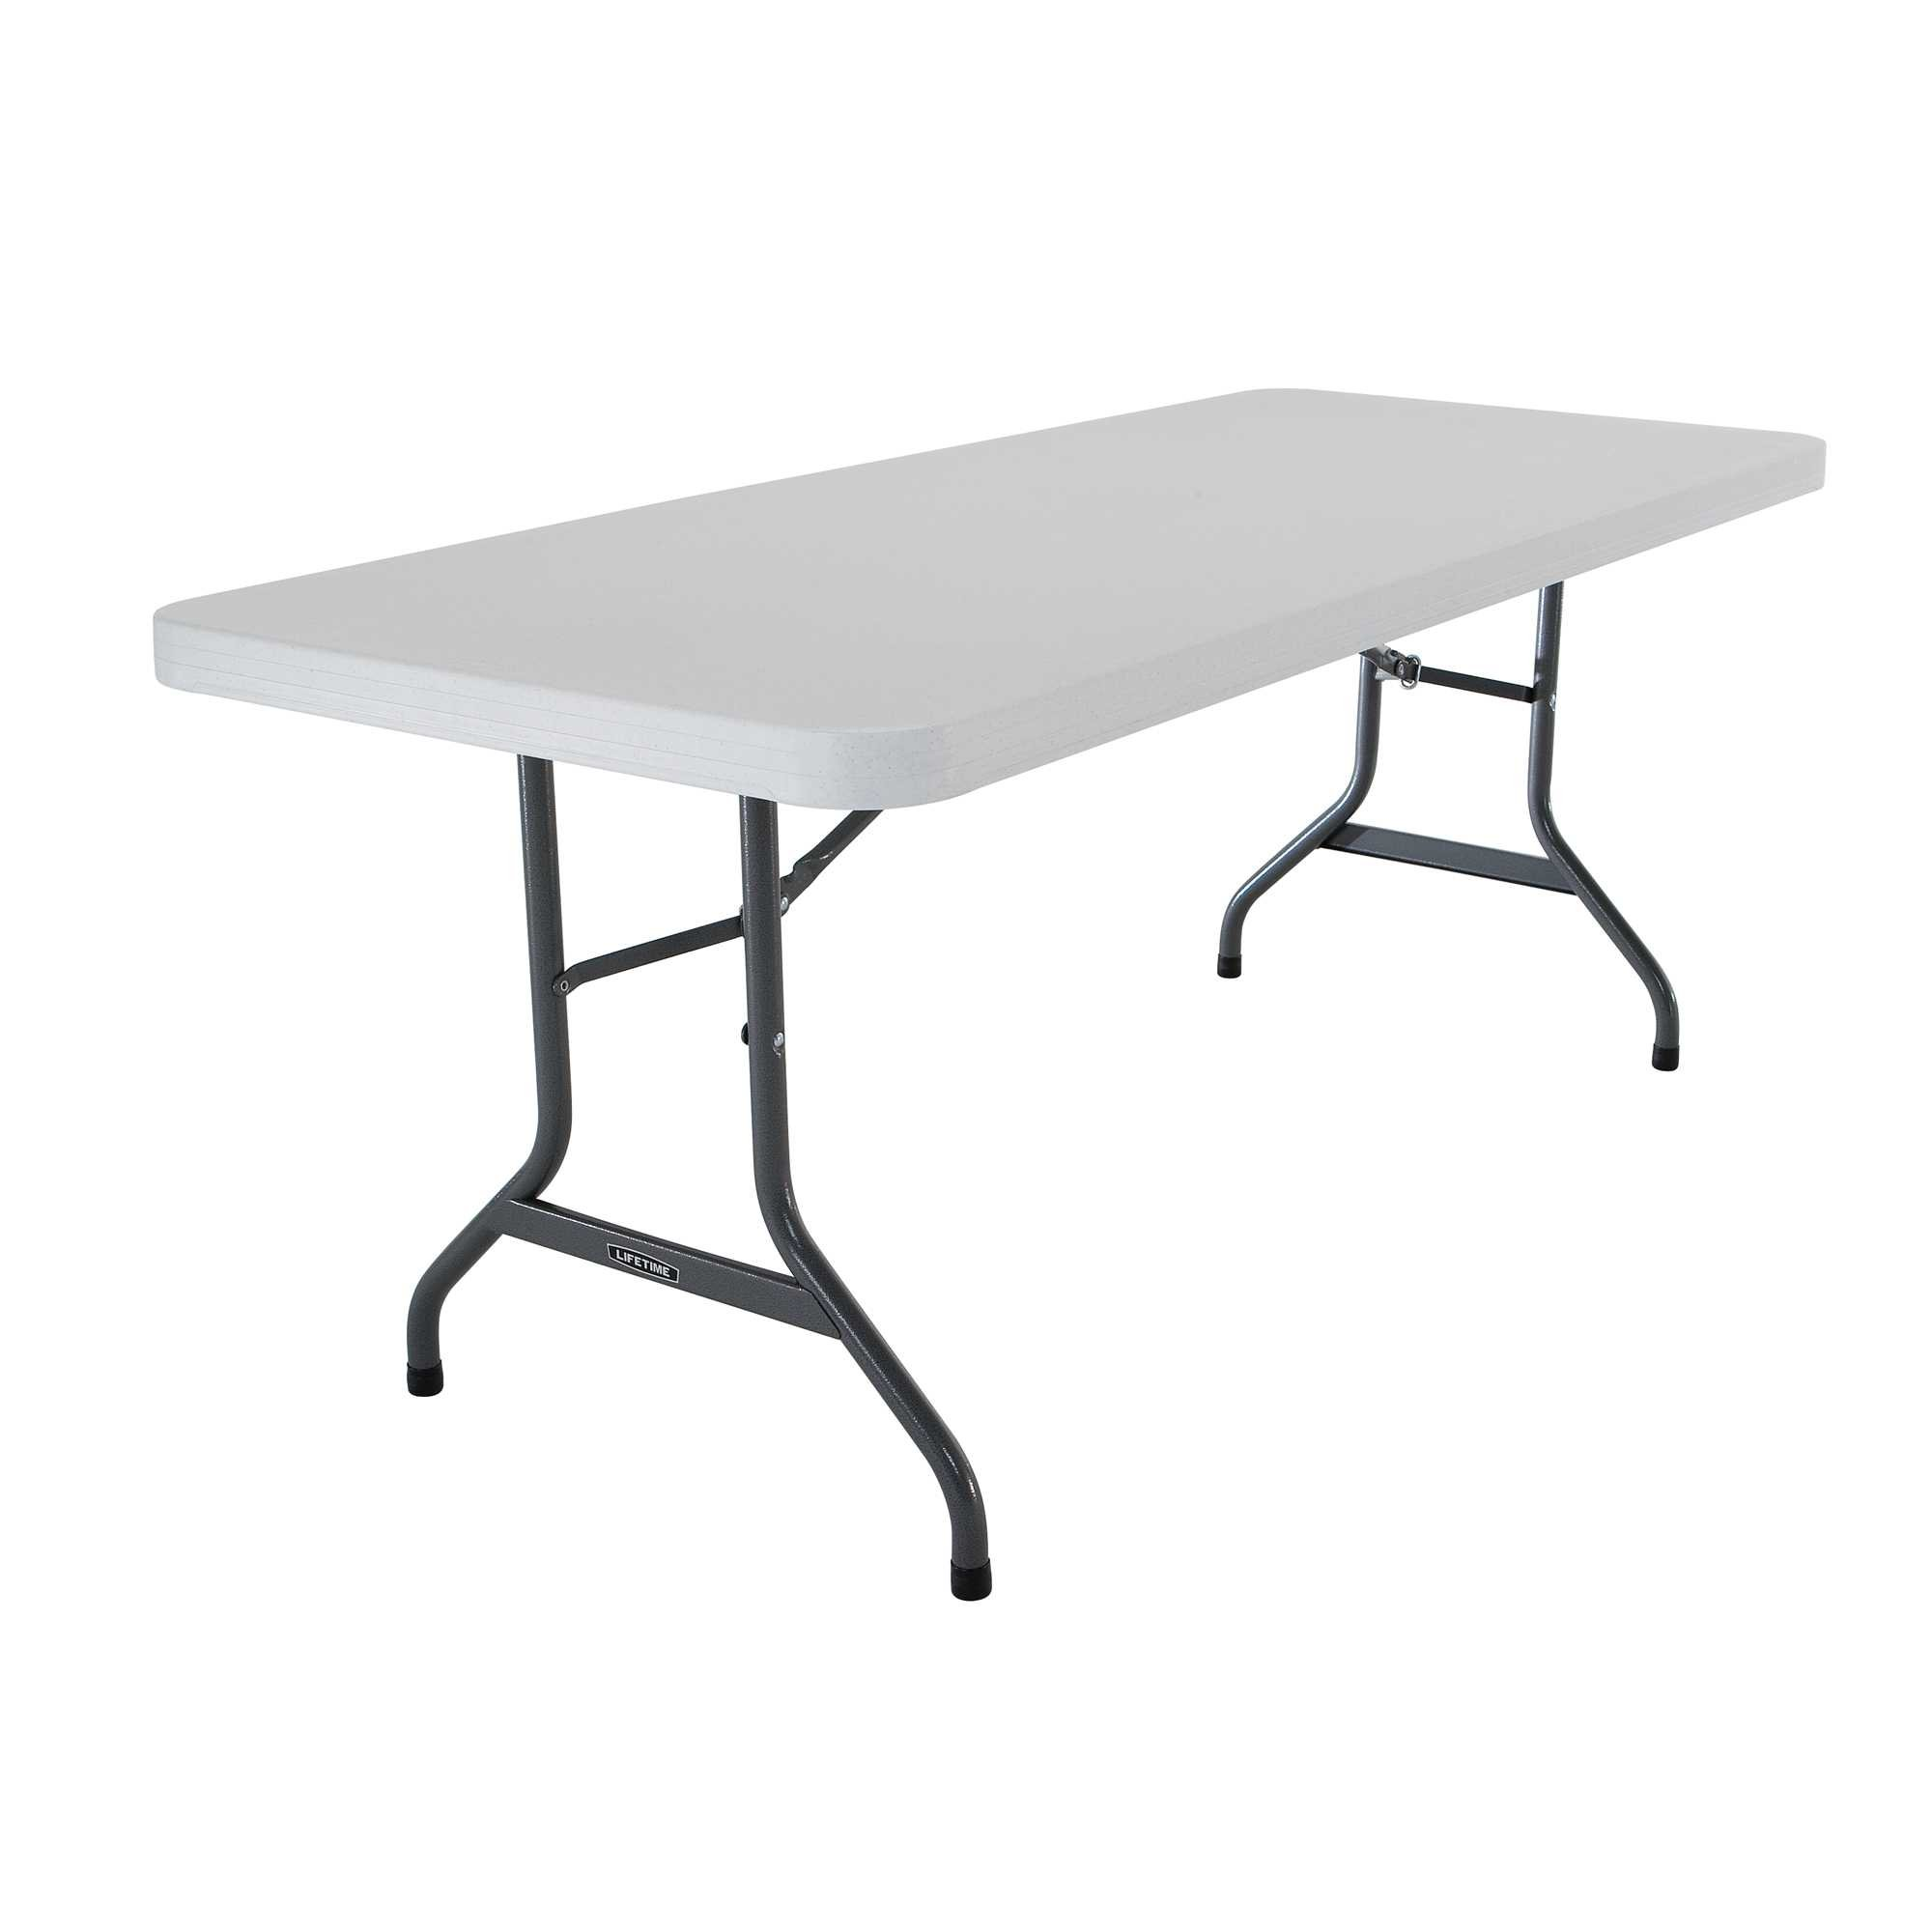 helpful rated tables in reviews customer product table image almond best kids amazon pcr folding lifetime com hl picnic